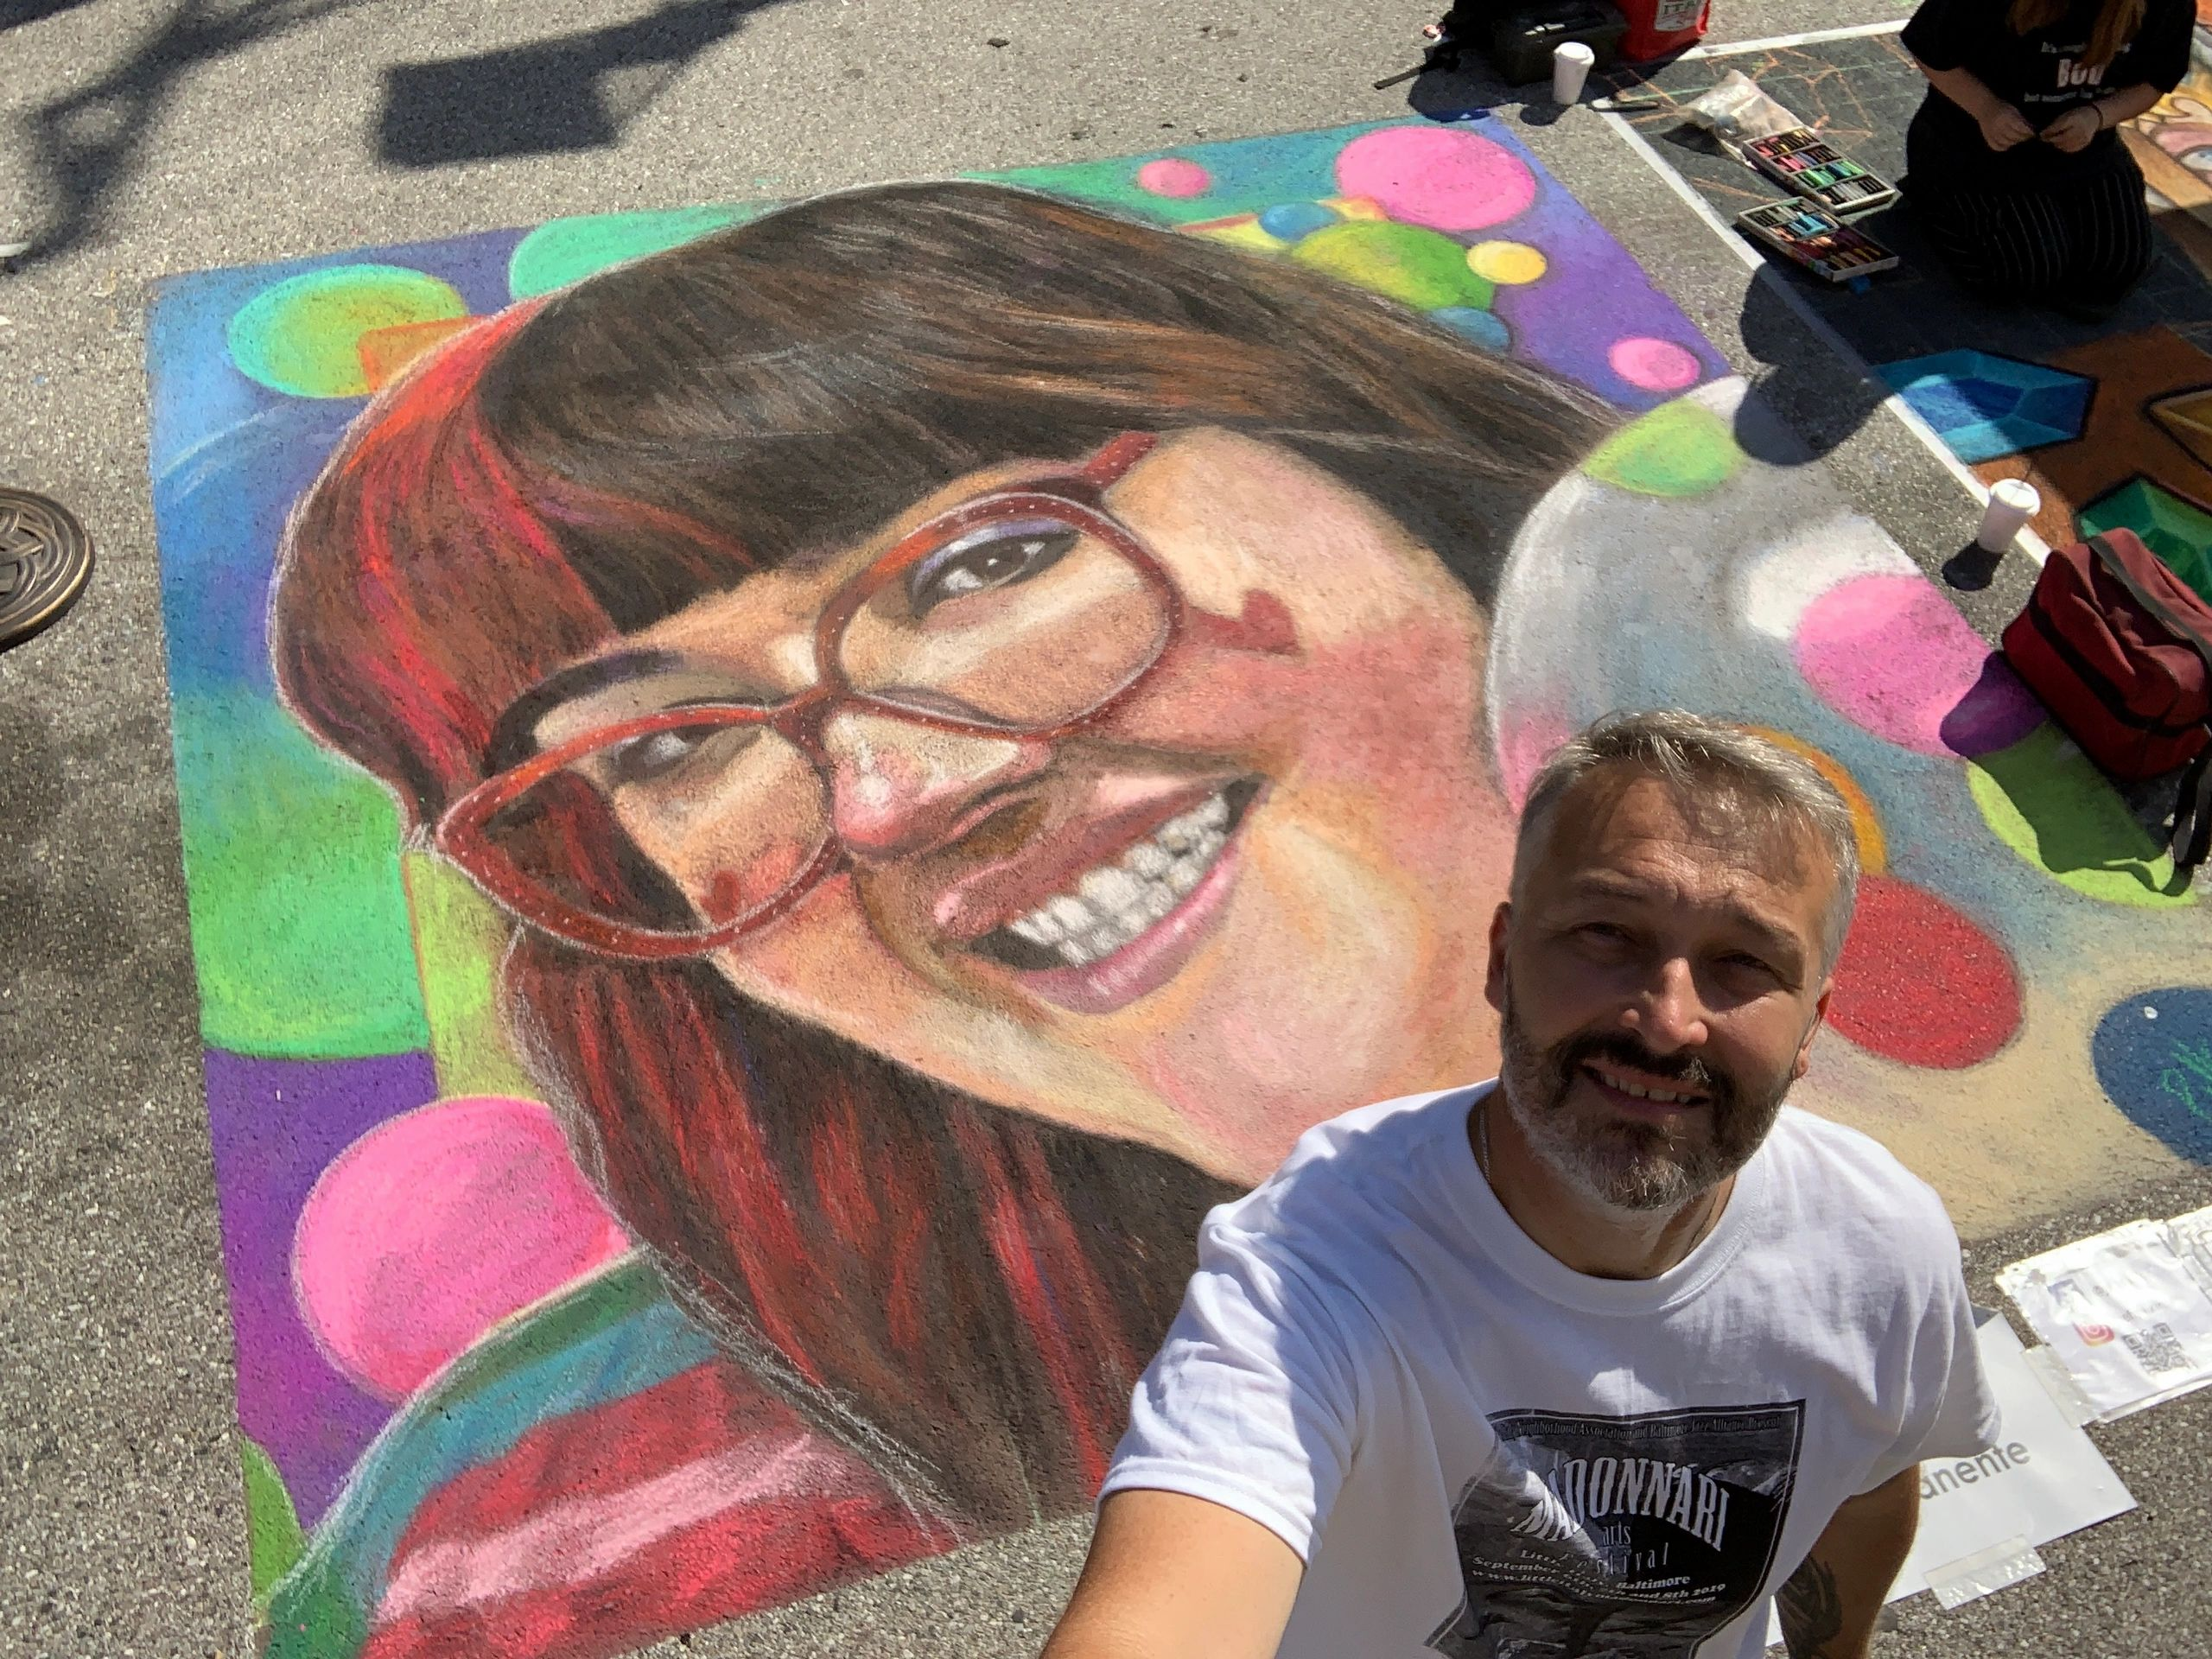 This photo was taken at Little Italy Baltimore Madonnnari Arts Festival 2019.  Its my daughter.